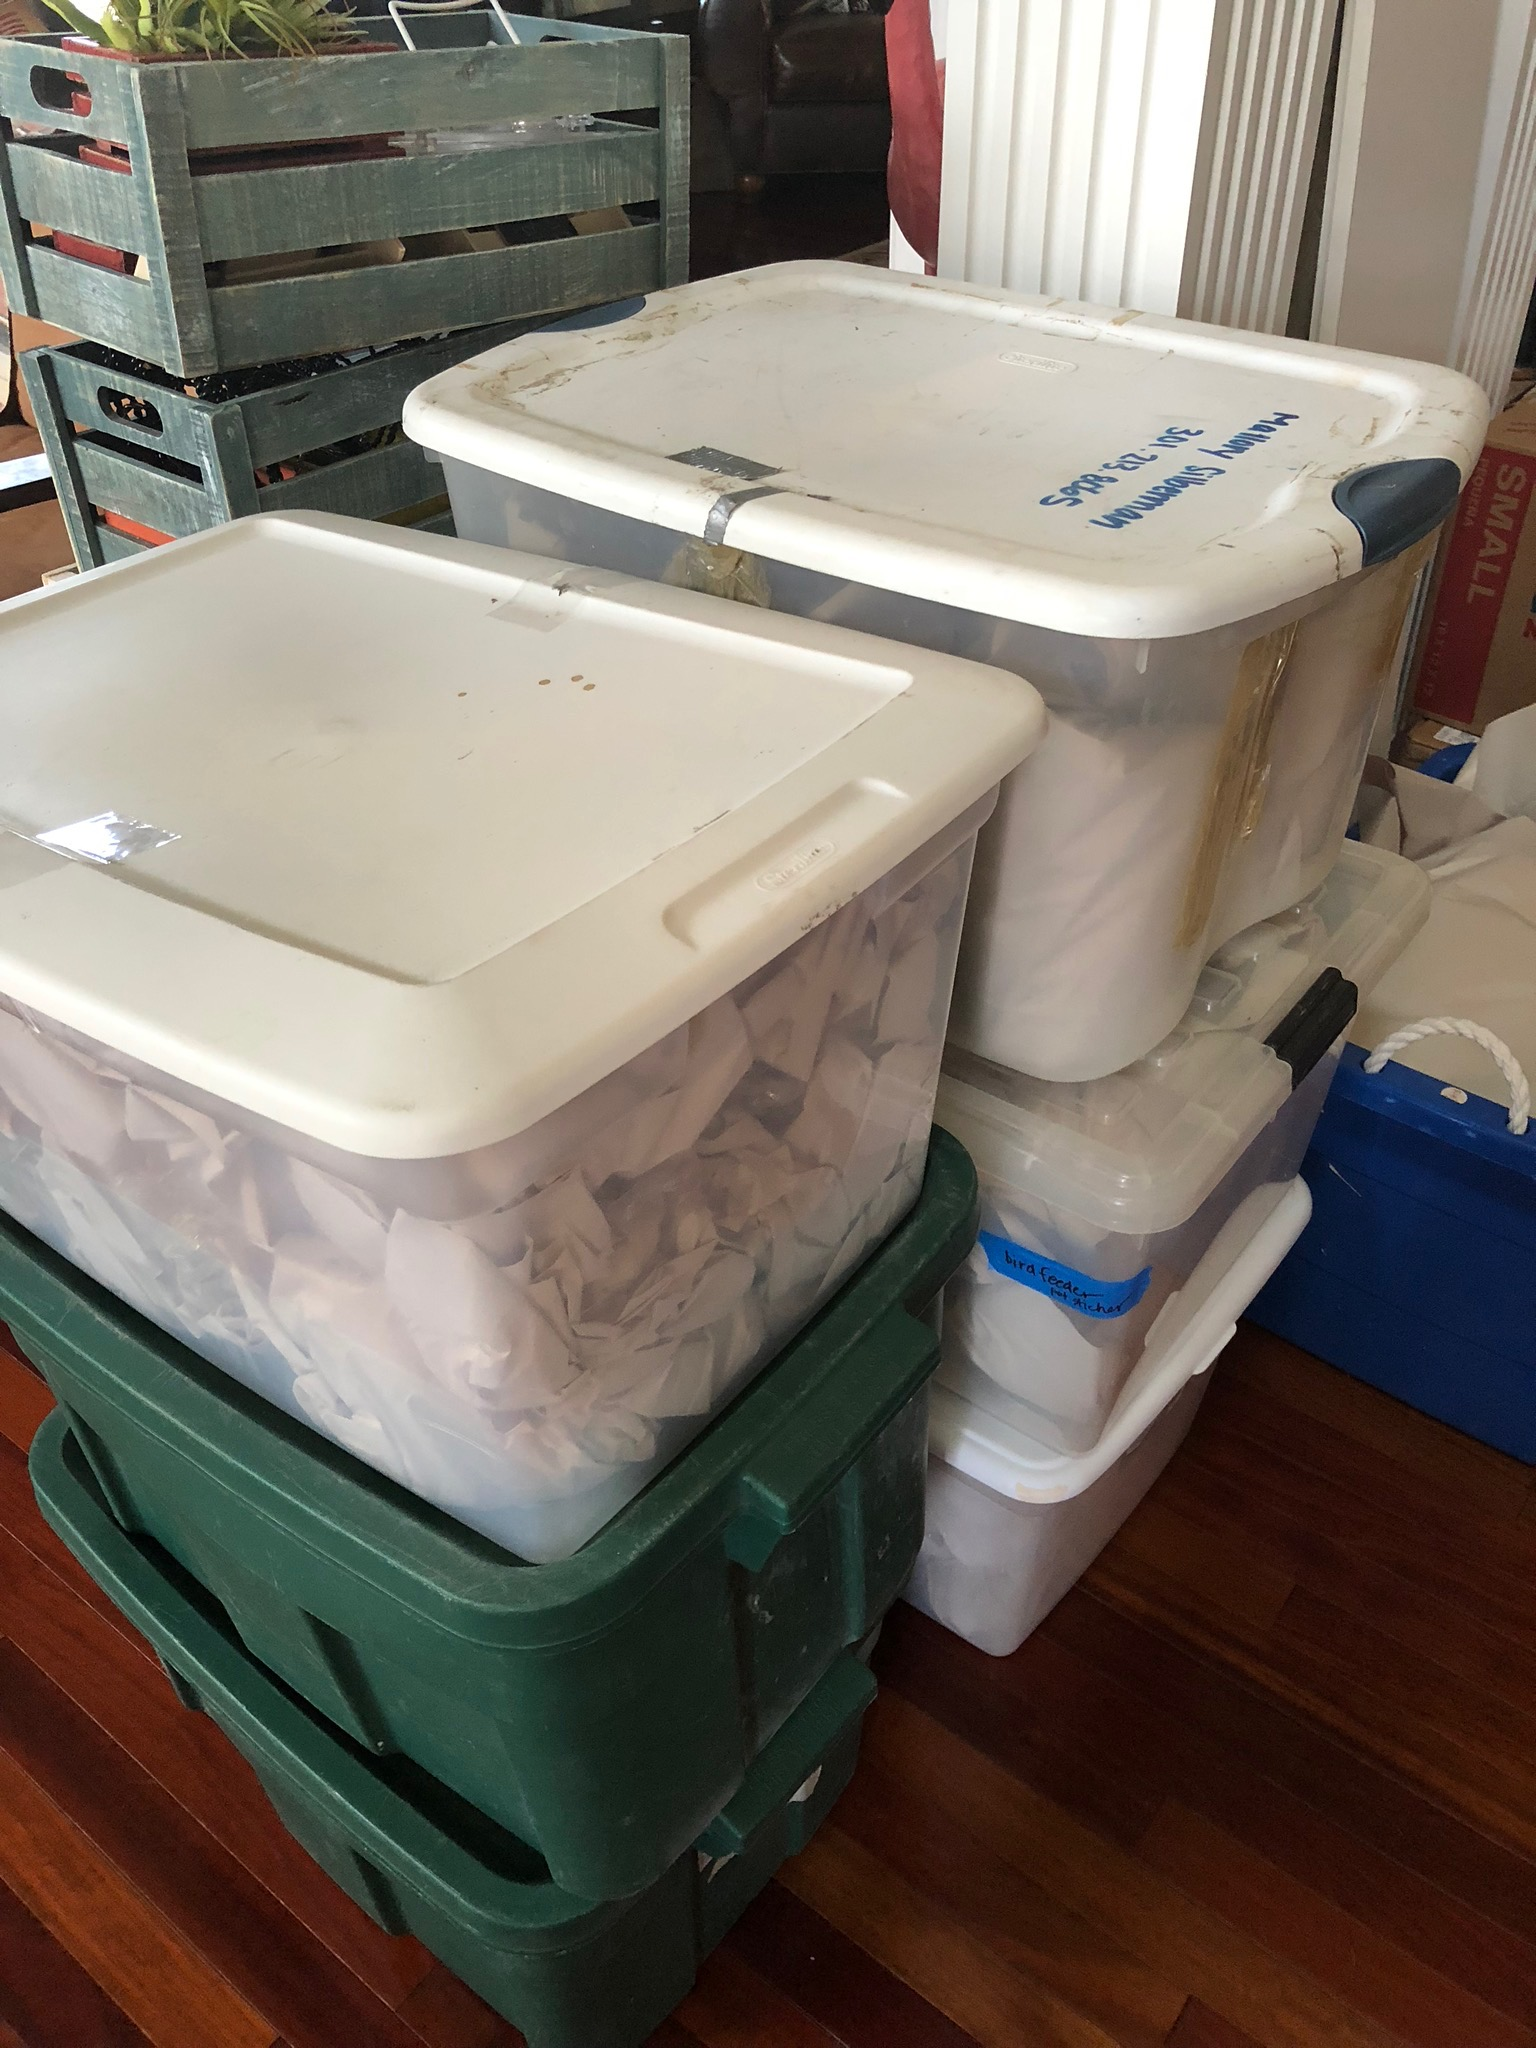 When you choose plastic, try to reuse it again and again! These bins have carried pottery to shows, supplies to my kid's colleges, and stored valuables in the basement.